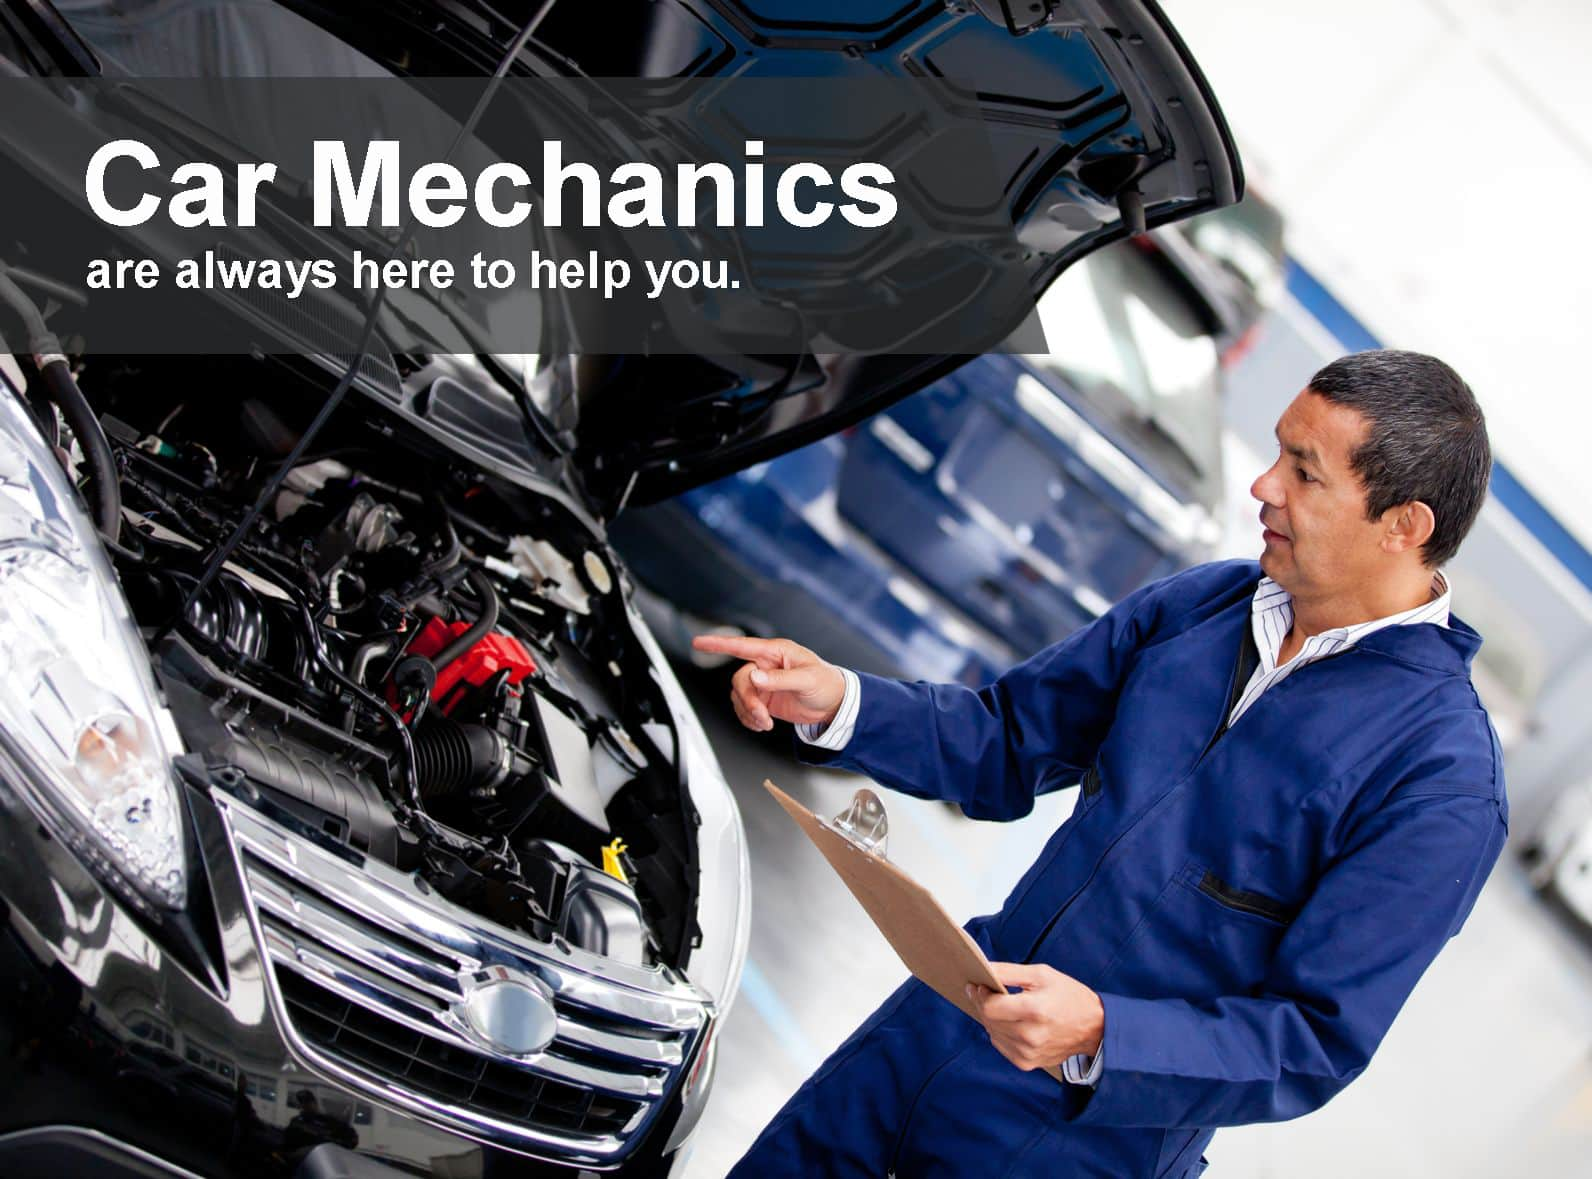 An Auto Mechanics Life and Capabilities